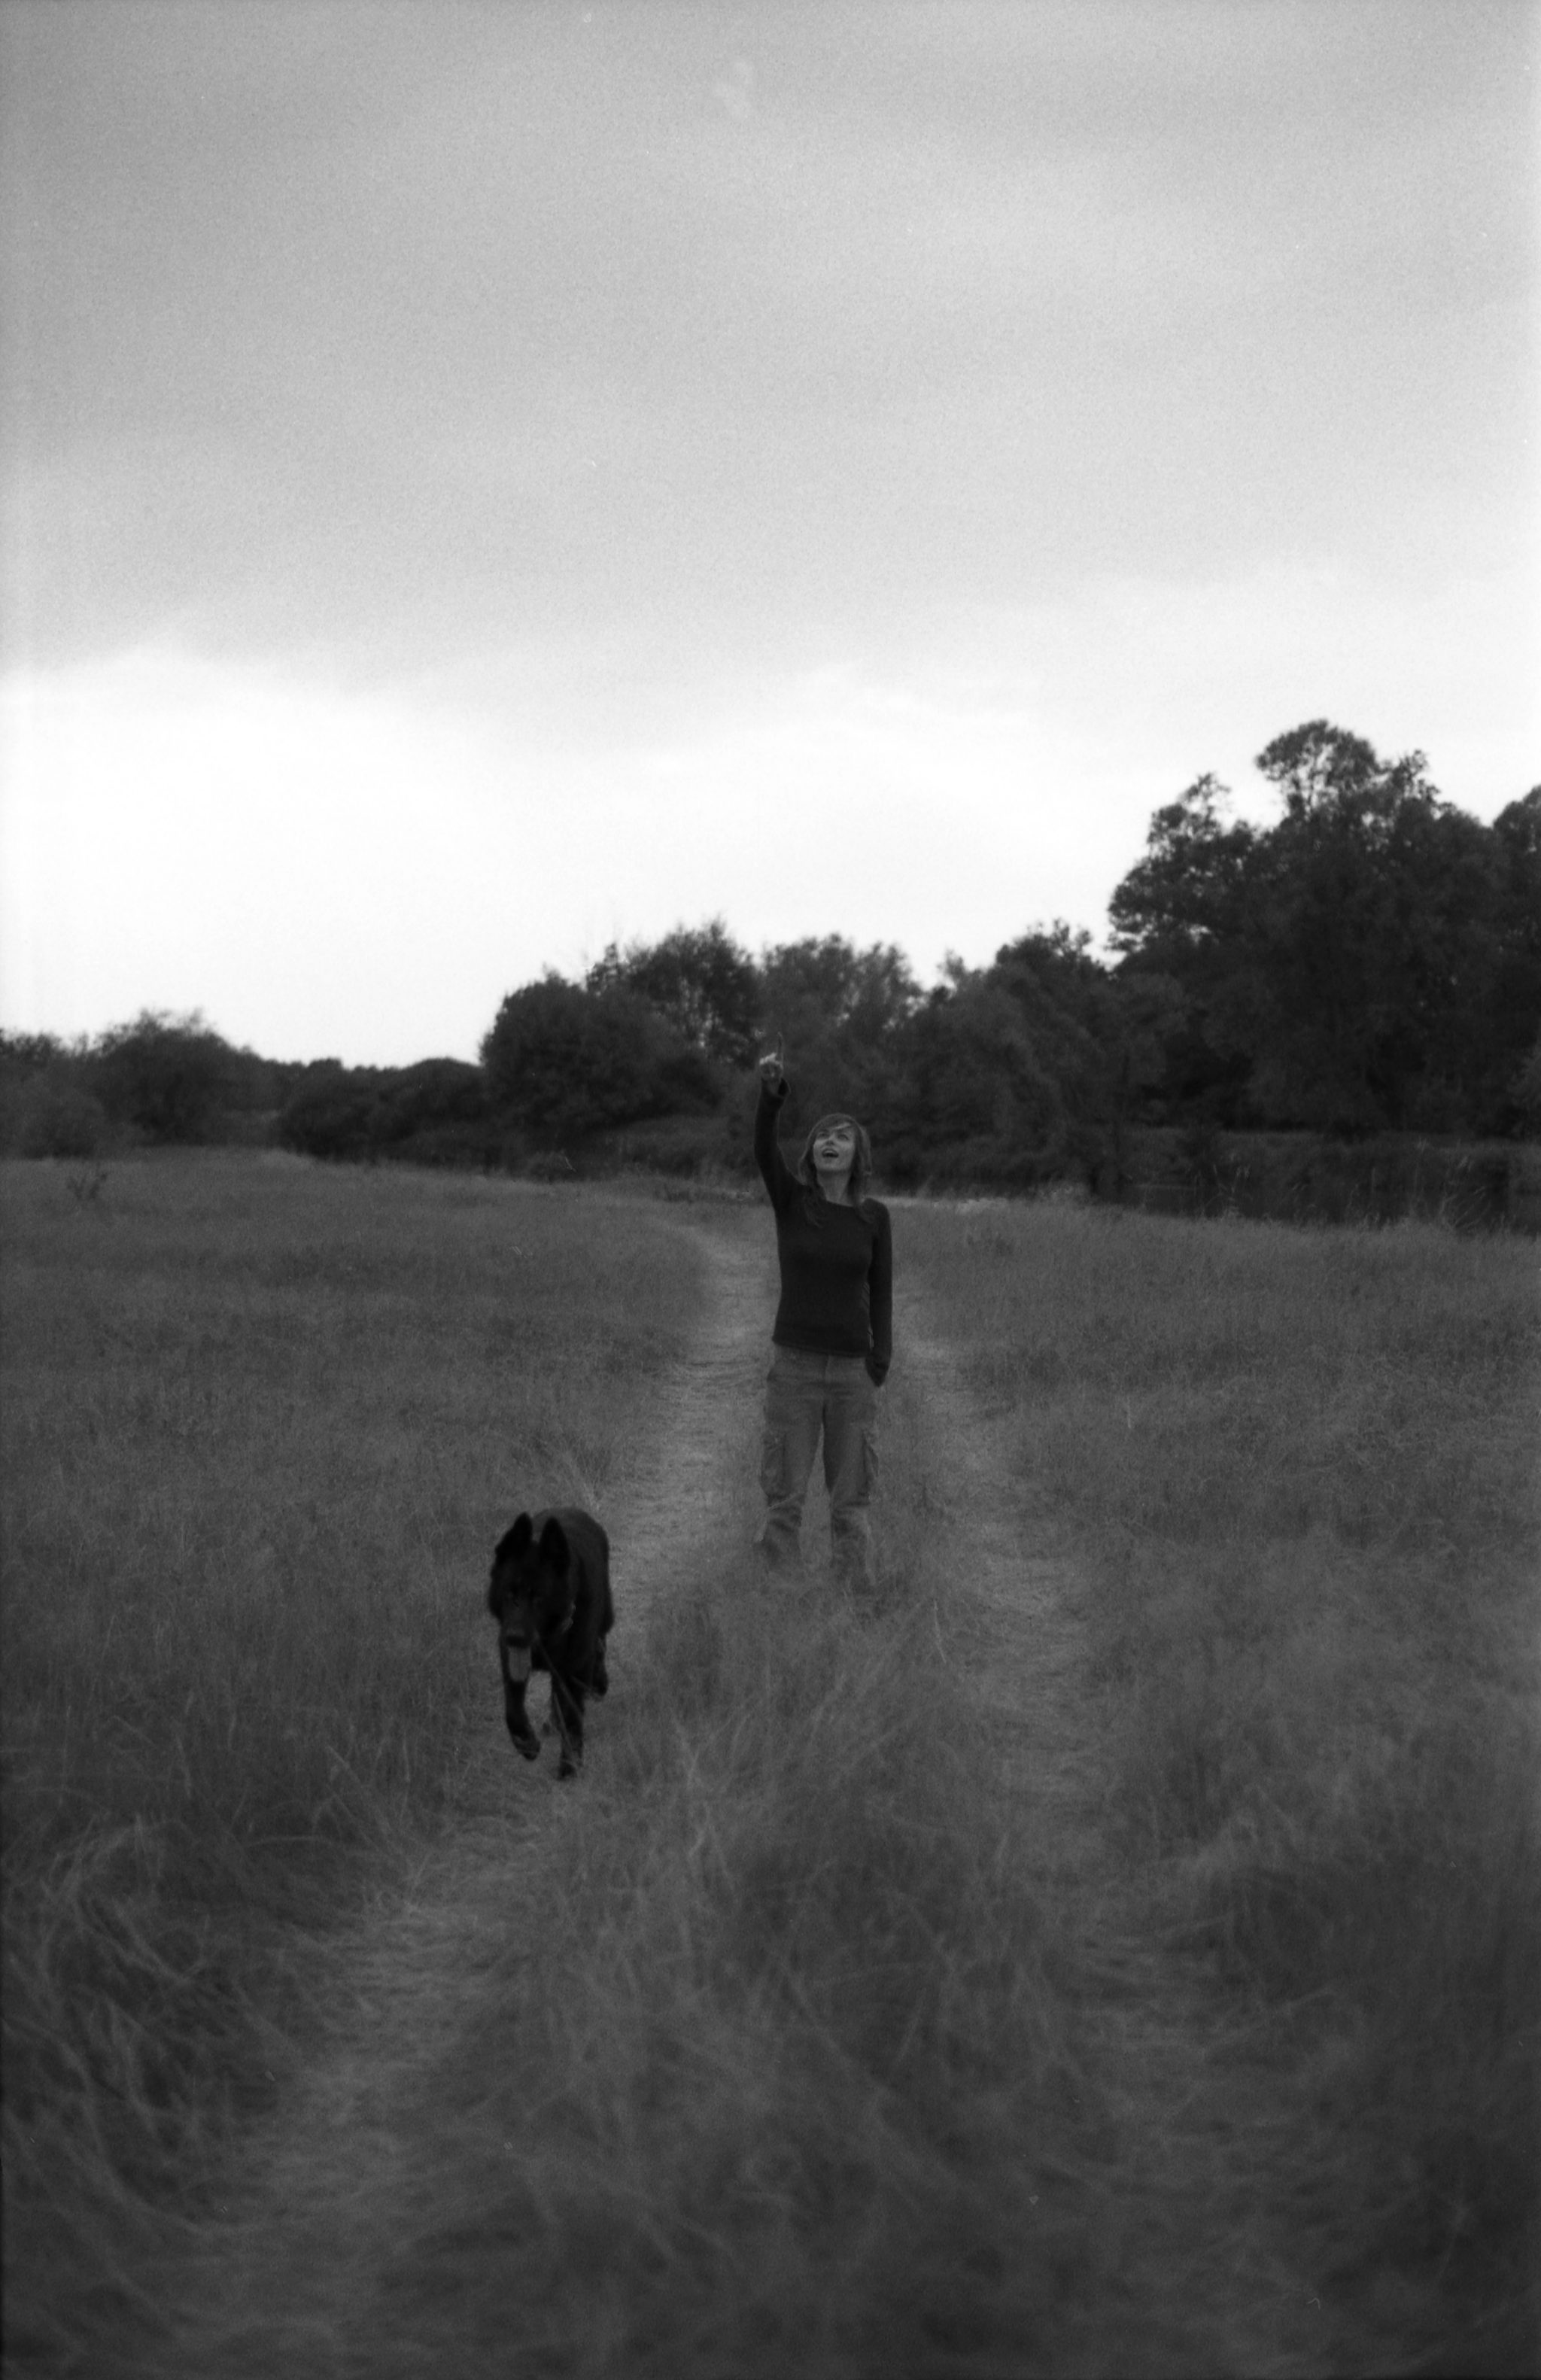 Ania and Robinek, around Warka, Poland, 2006